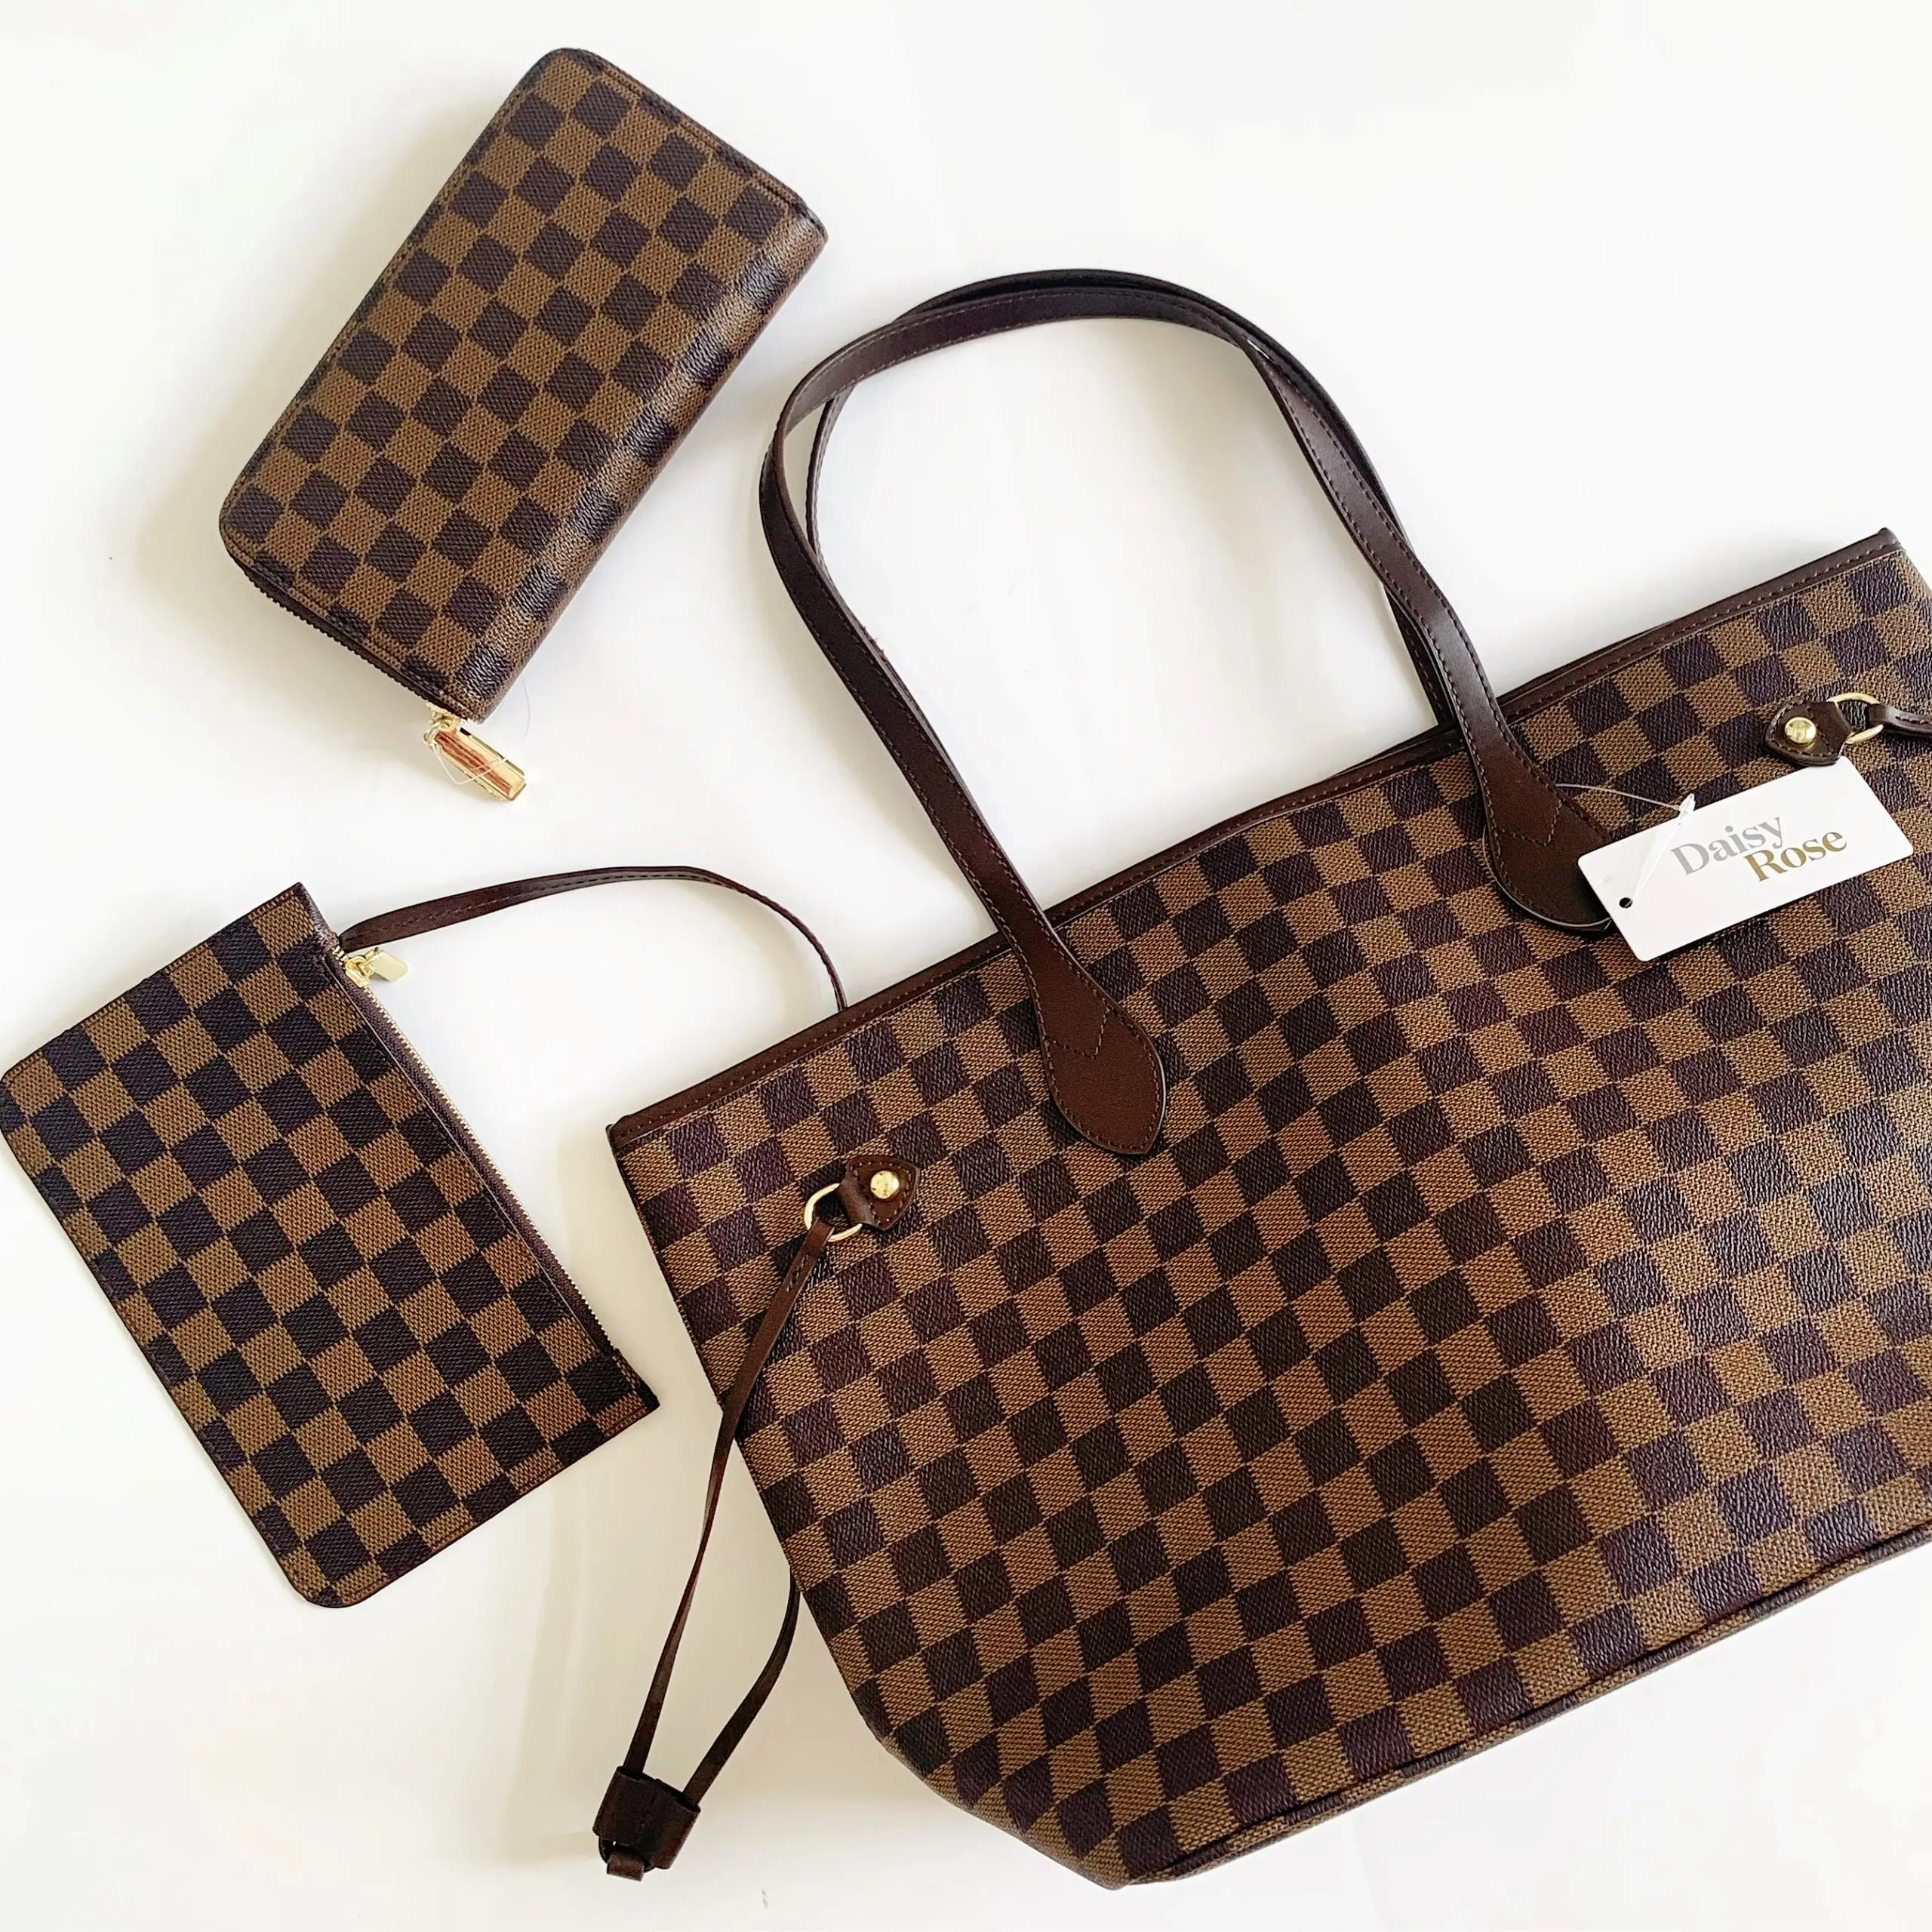 daisy rose checkered tote bag and wallet - LV dupe